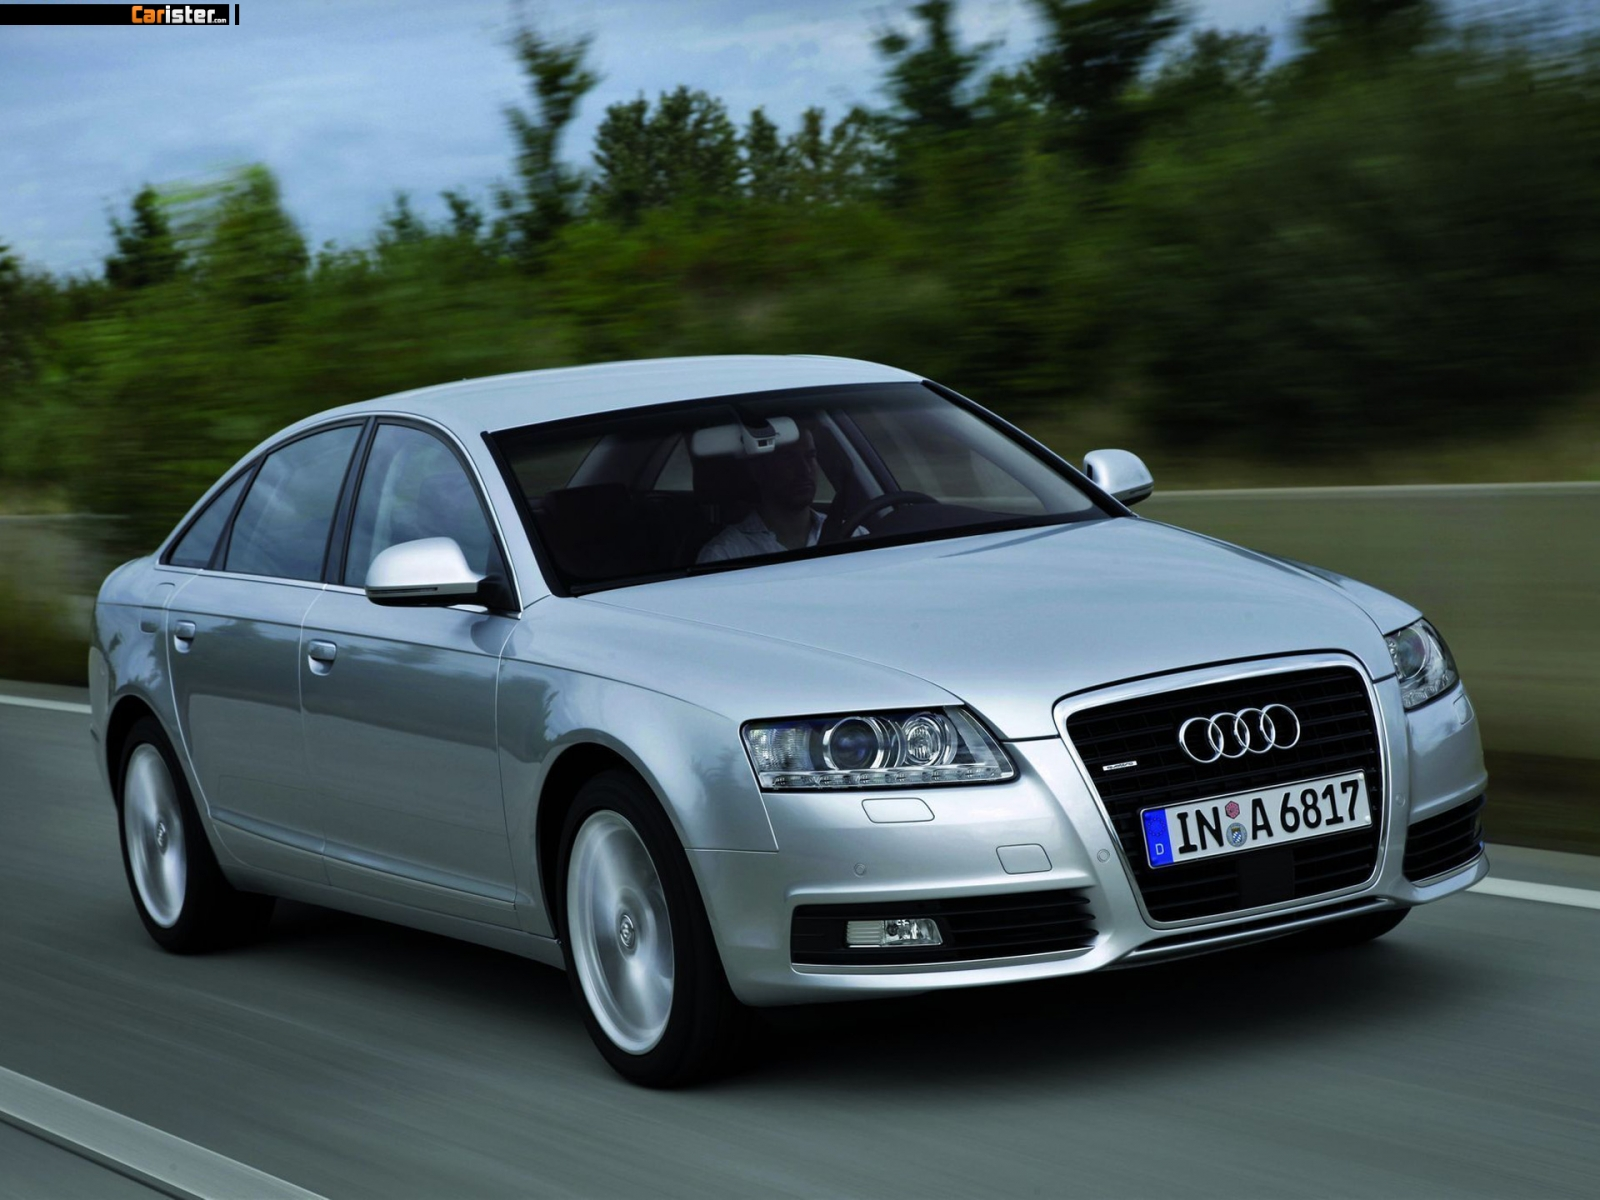 Audi A6 2009 - Photo 52 - Taille: 1600x1200